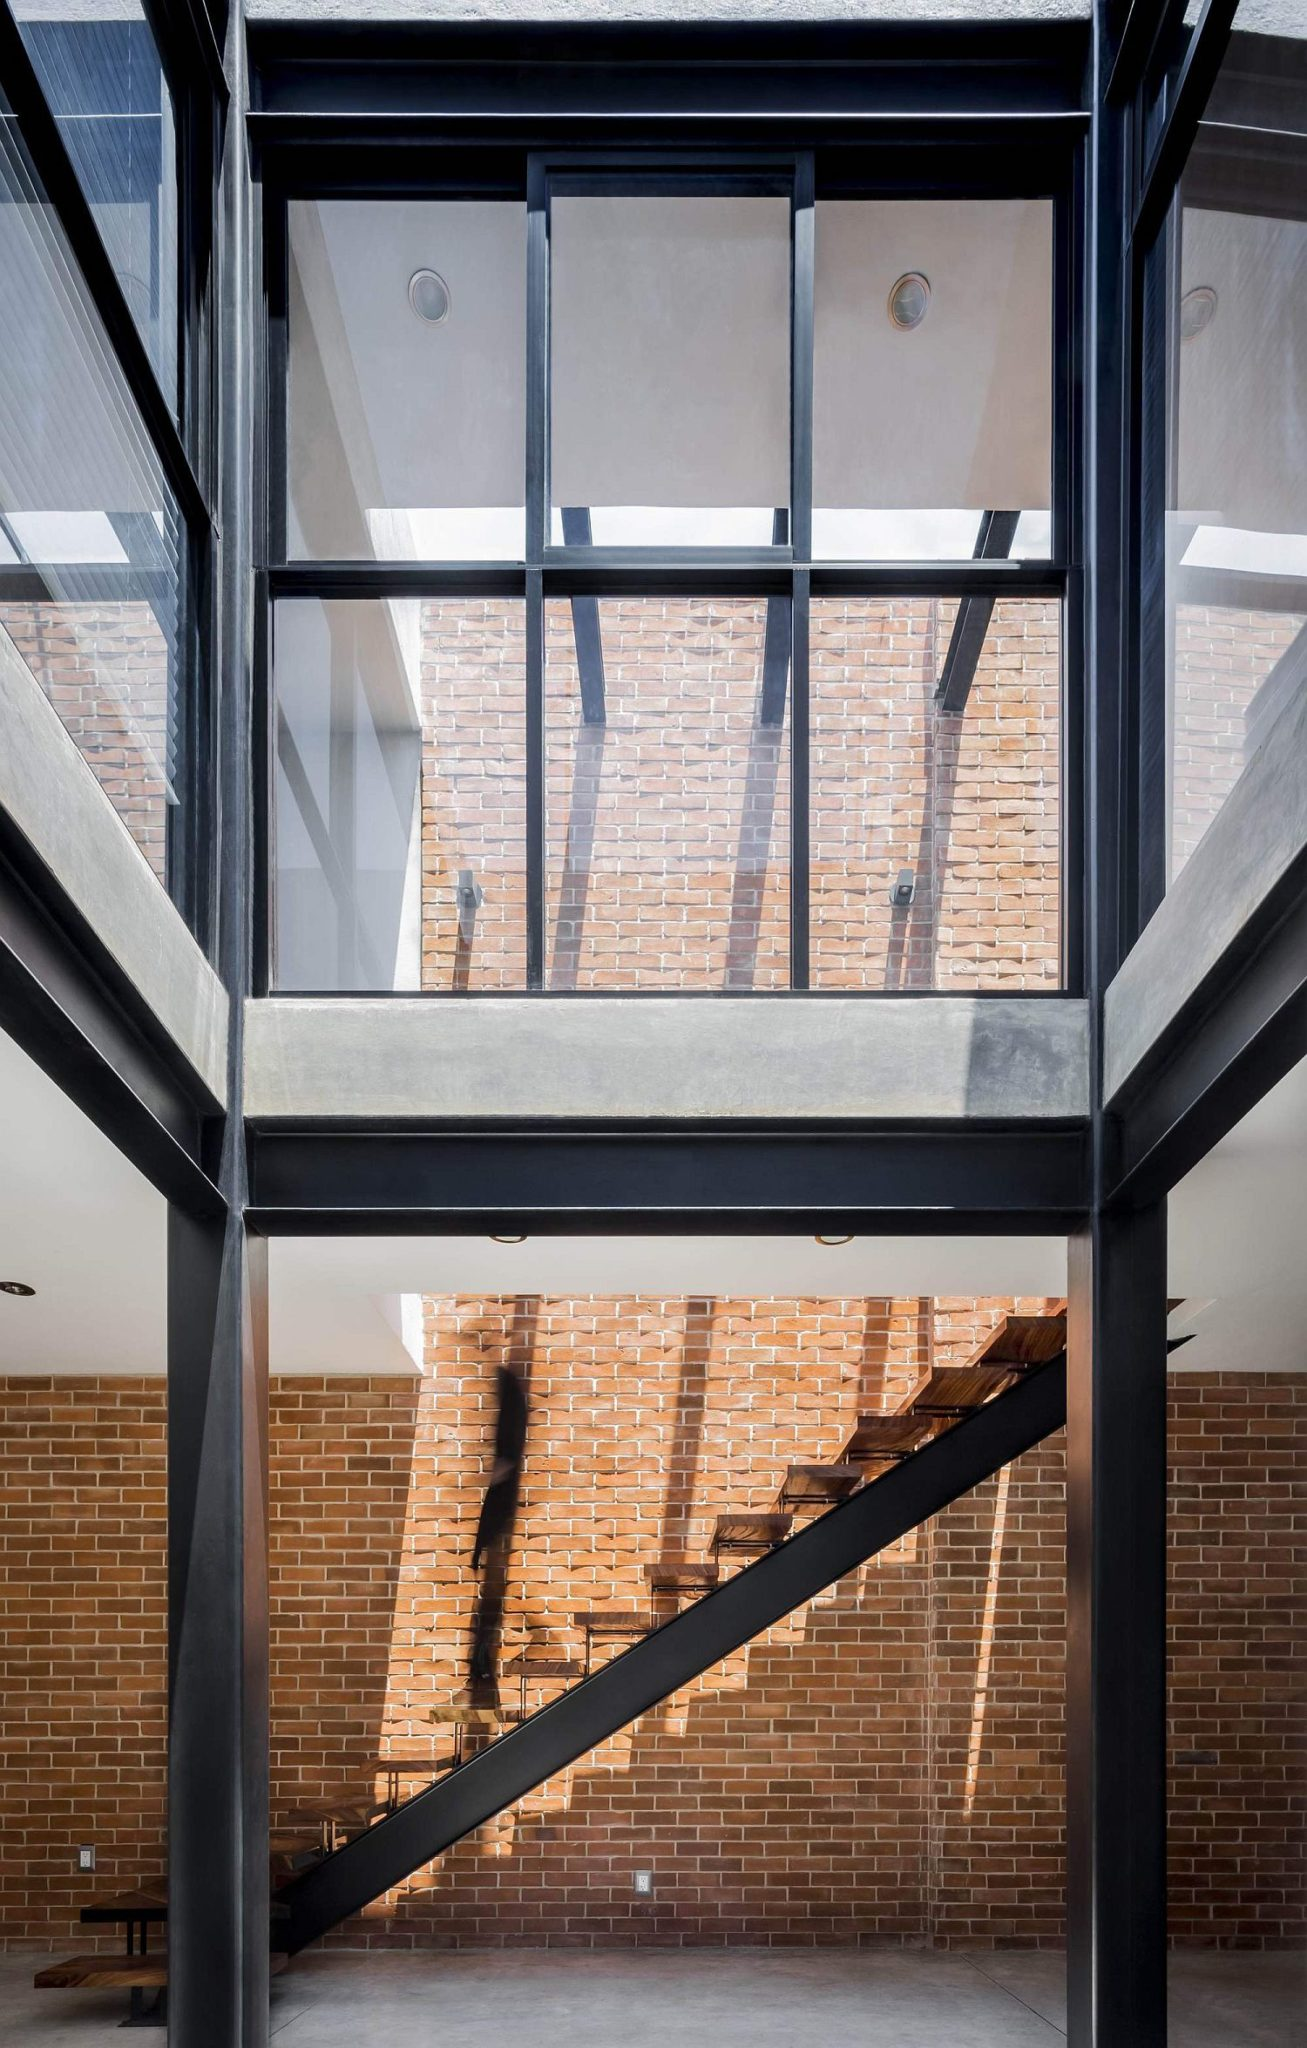 Glass walls and metallic frame give the home an industrial appeal